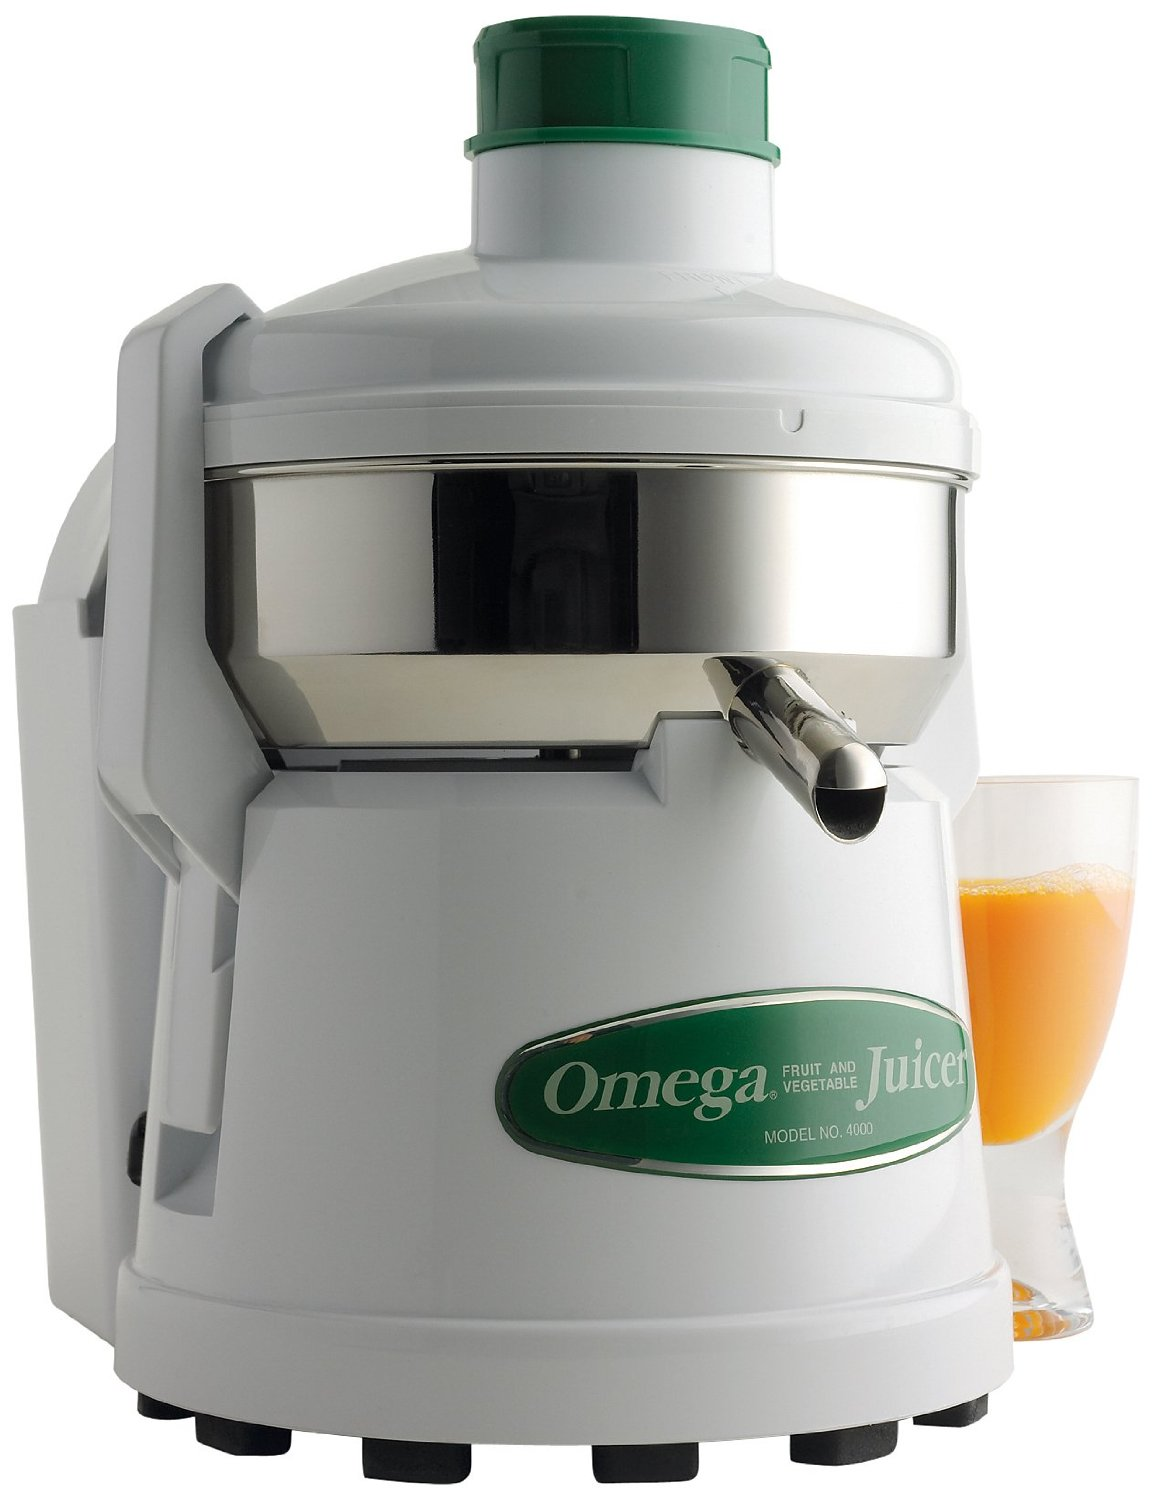 Omega juicer 4000 review